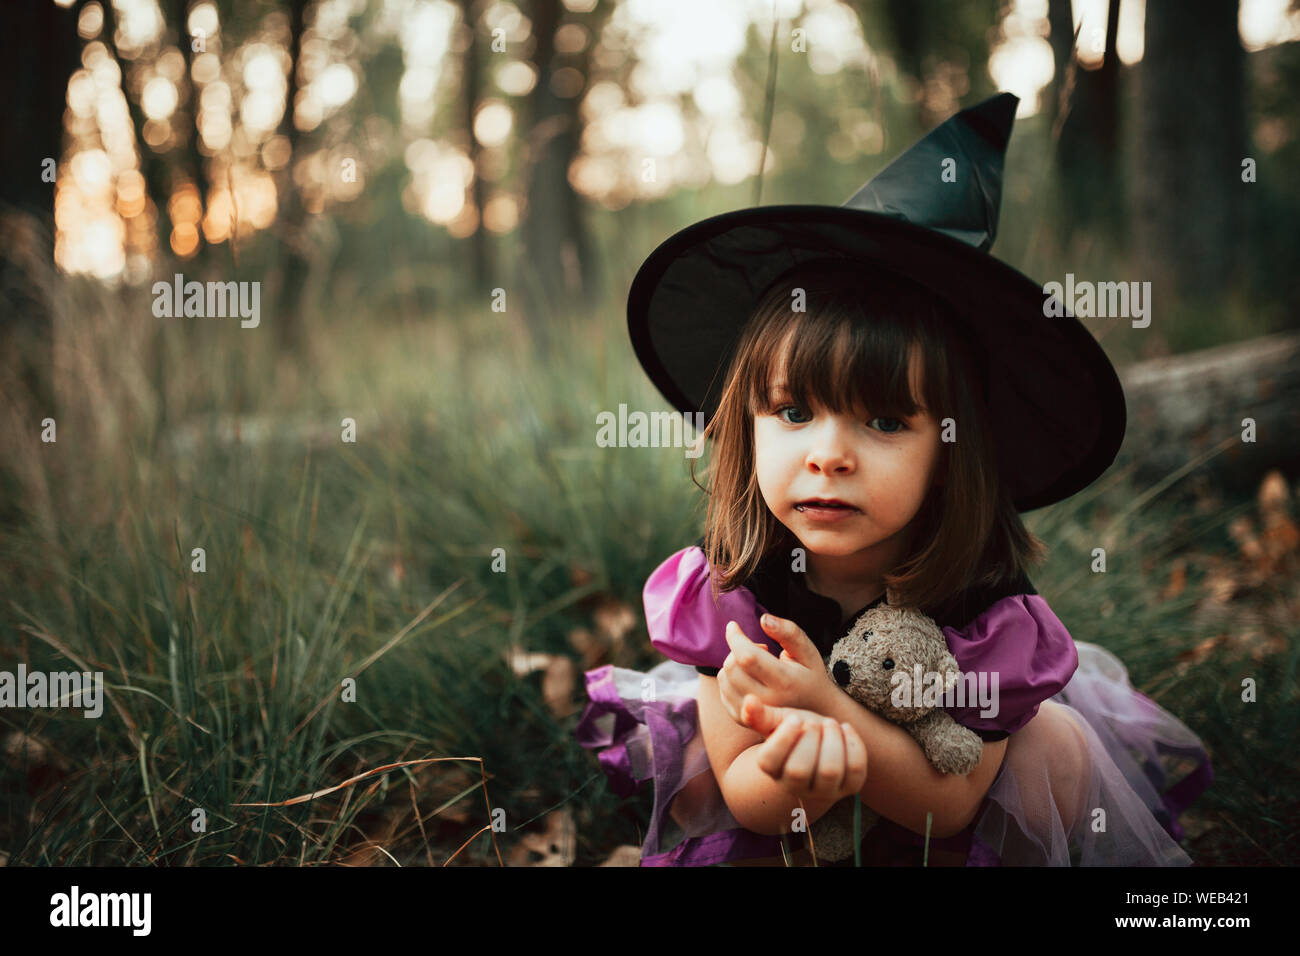 Smiling girl disguised as a witch in the woods during Halloween Stock Photo